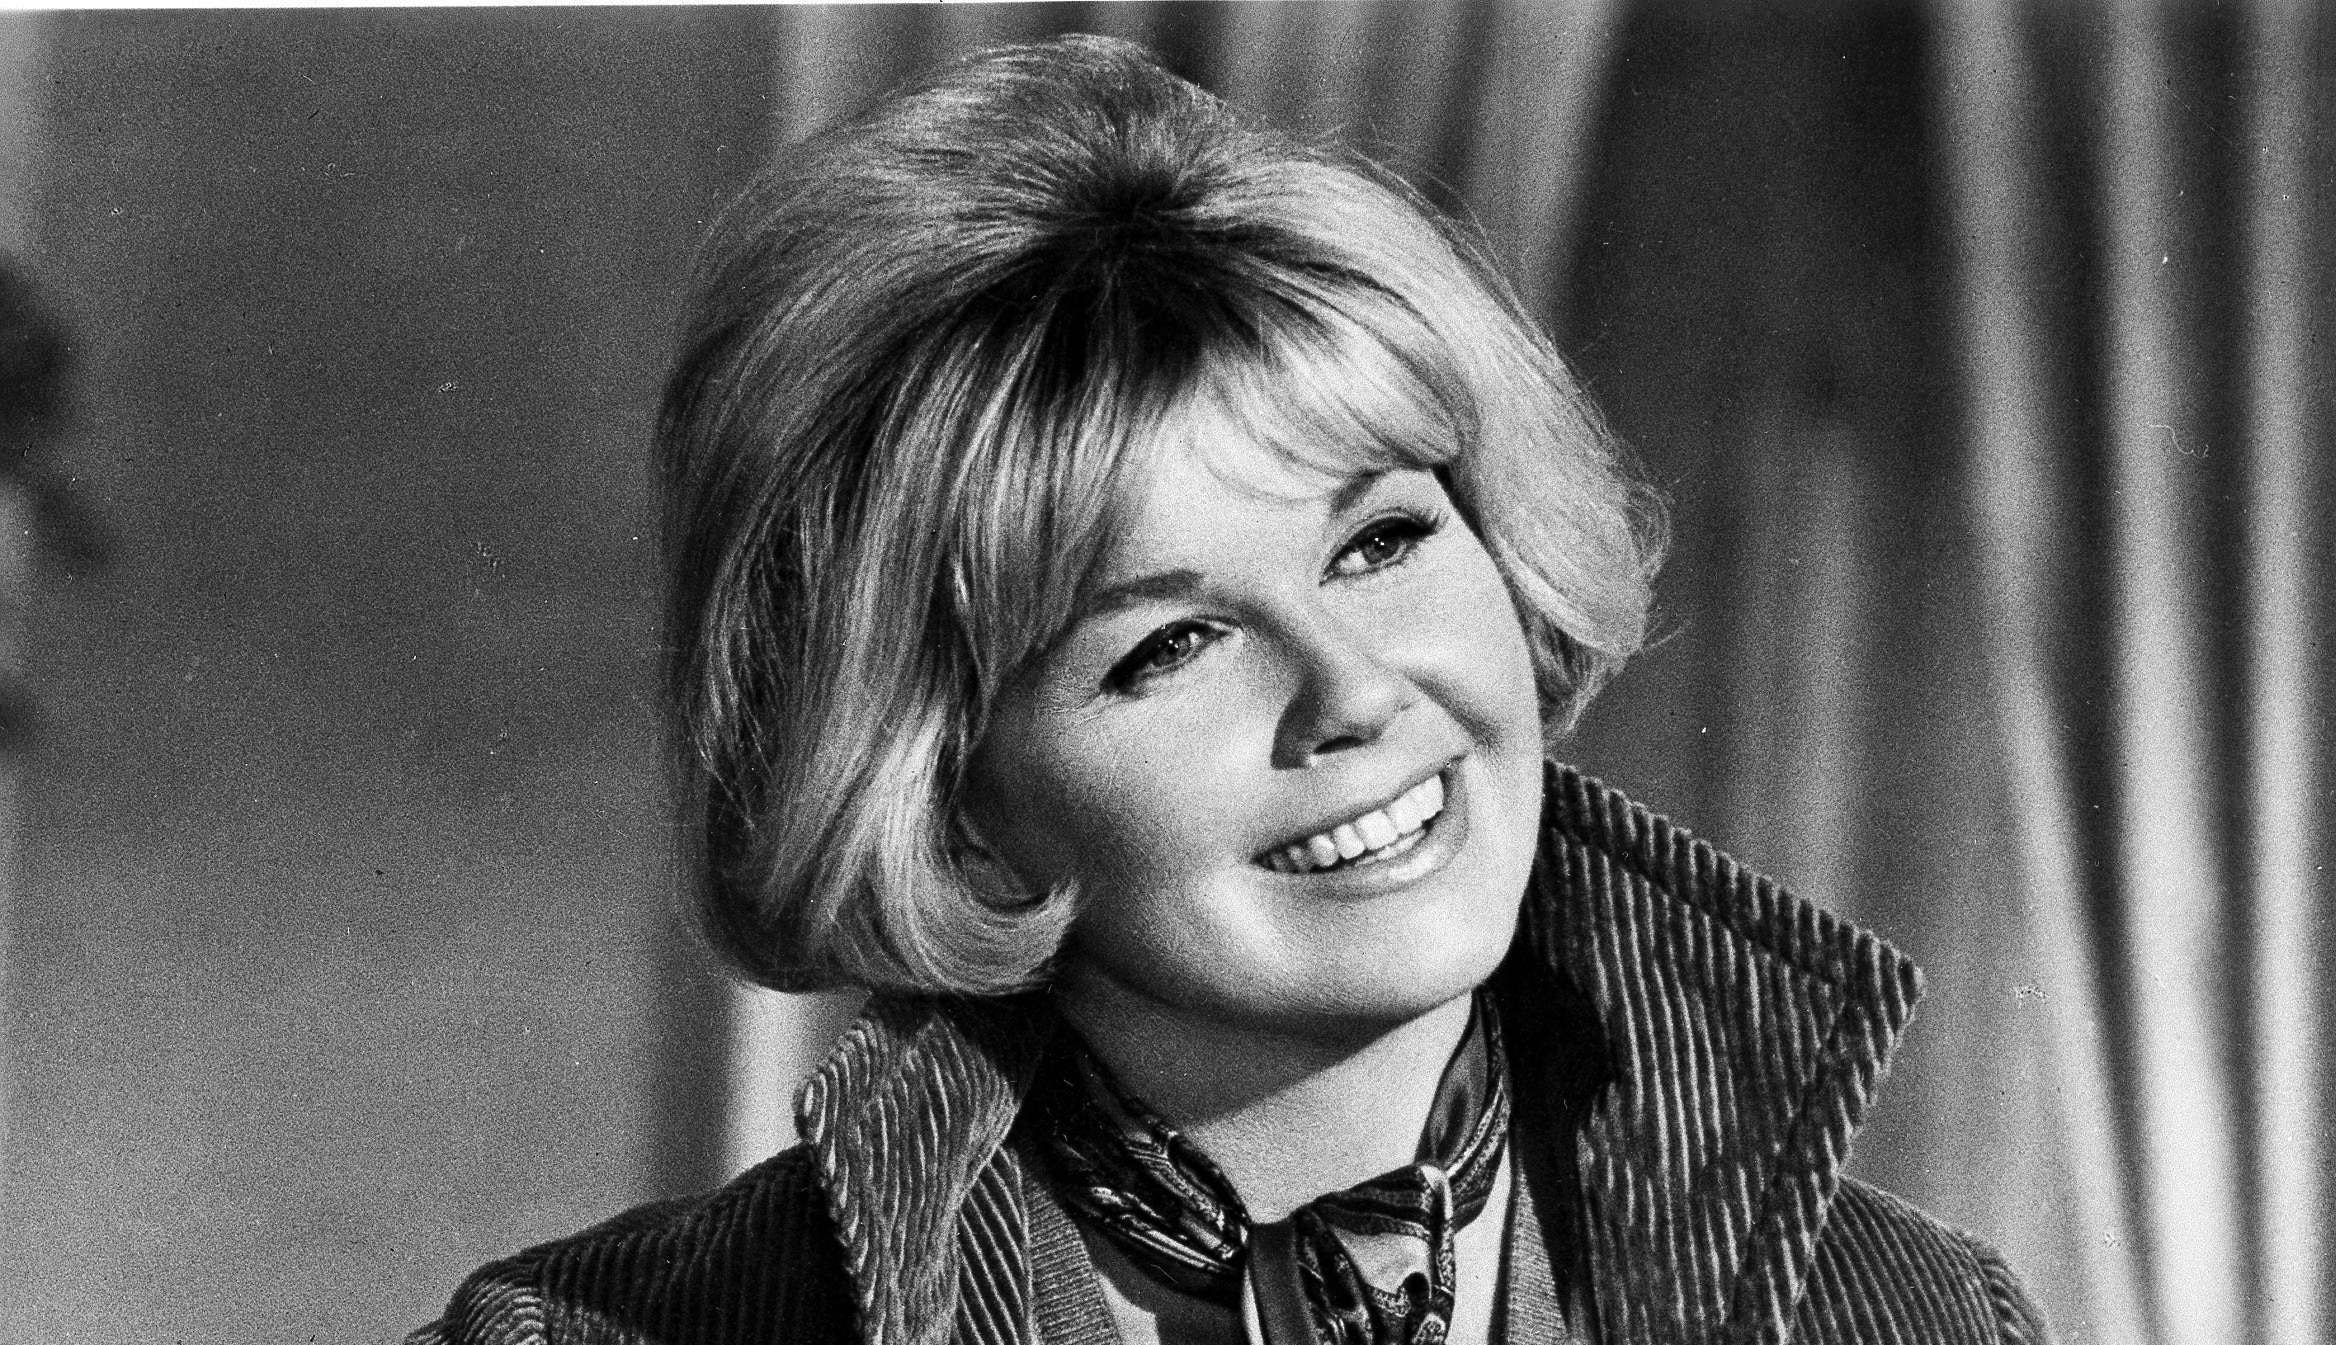 Doris Day was a sunny actress and a domestic violence survivor; are there lessons?